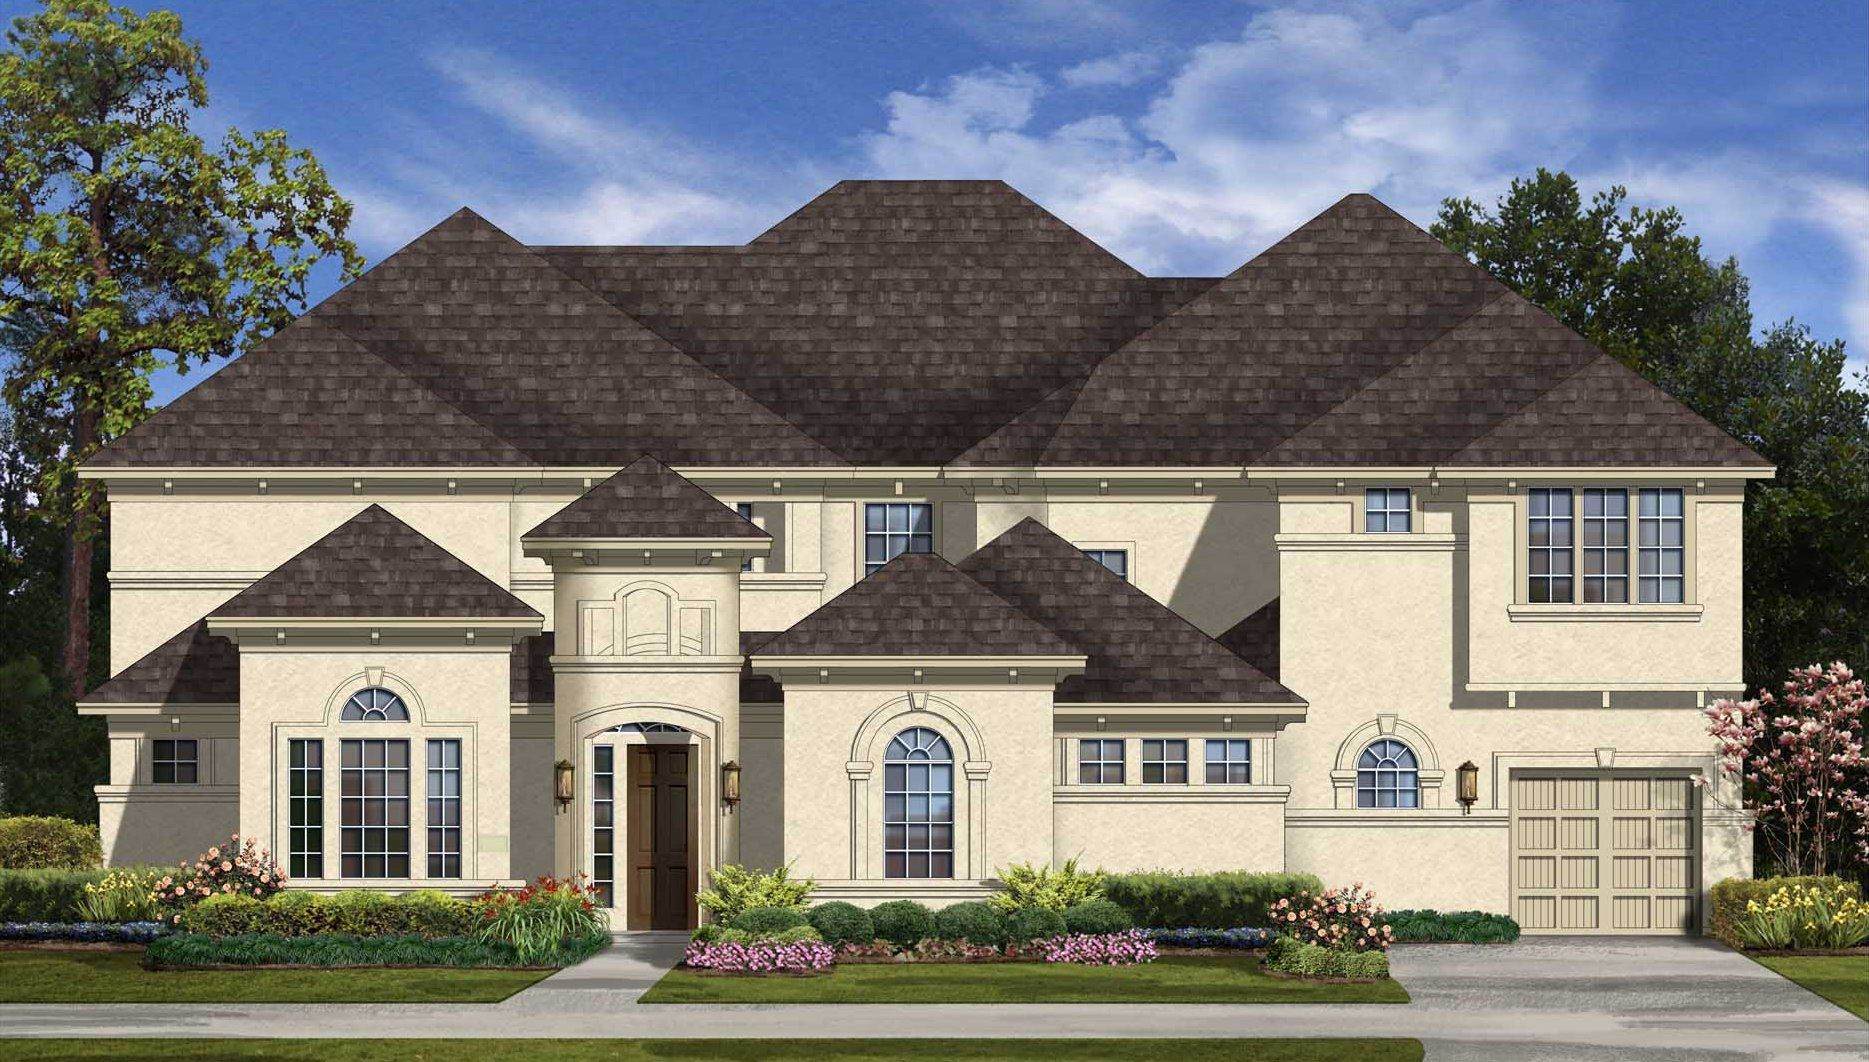 Single Family for Active at Positano 2834 Rainflower Meadow Lane Katy, Texas 77494 United States